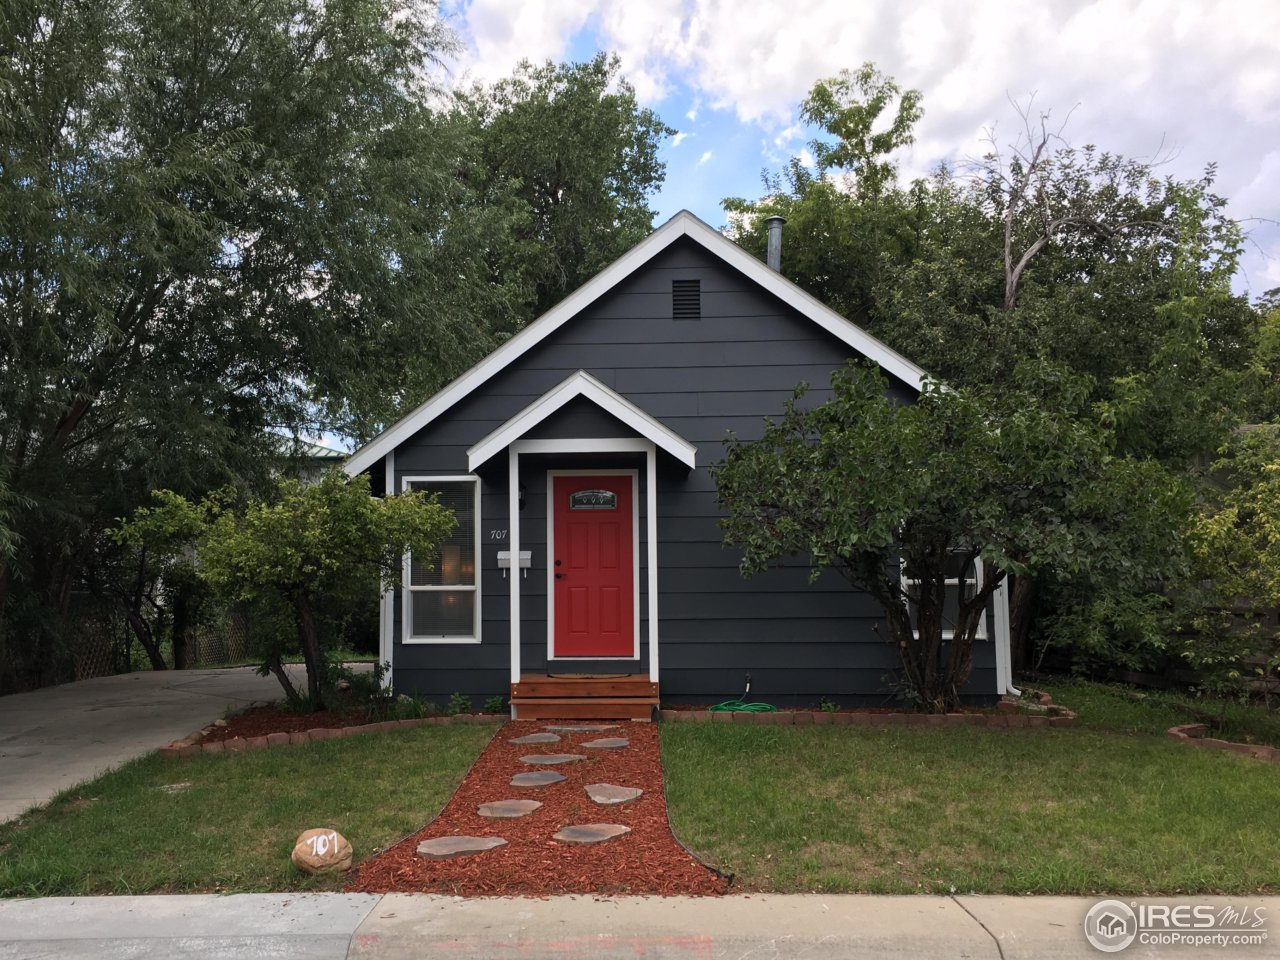 707 S Bryan Ave, Fort Collins, CO 80521